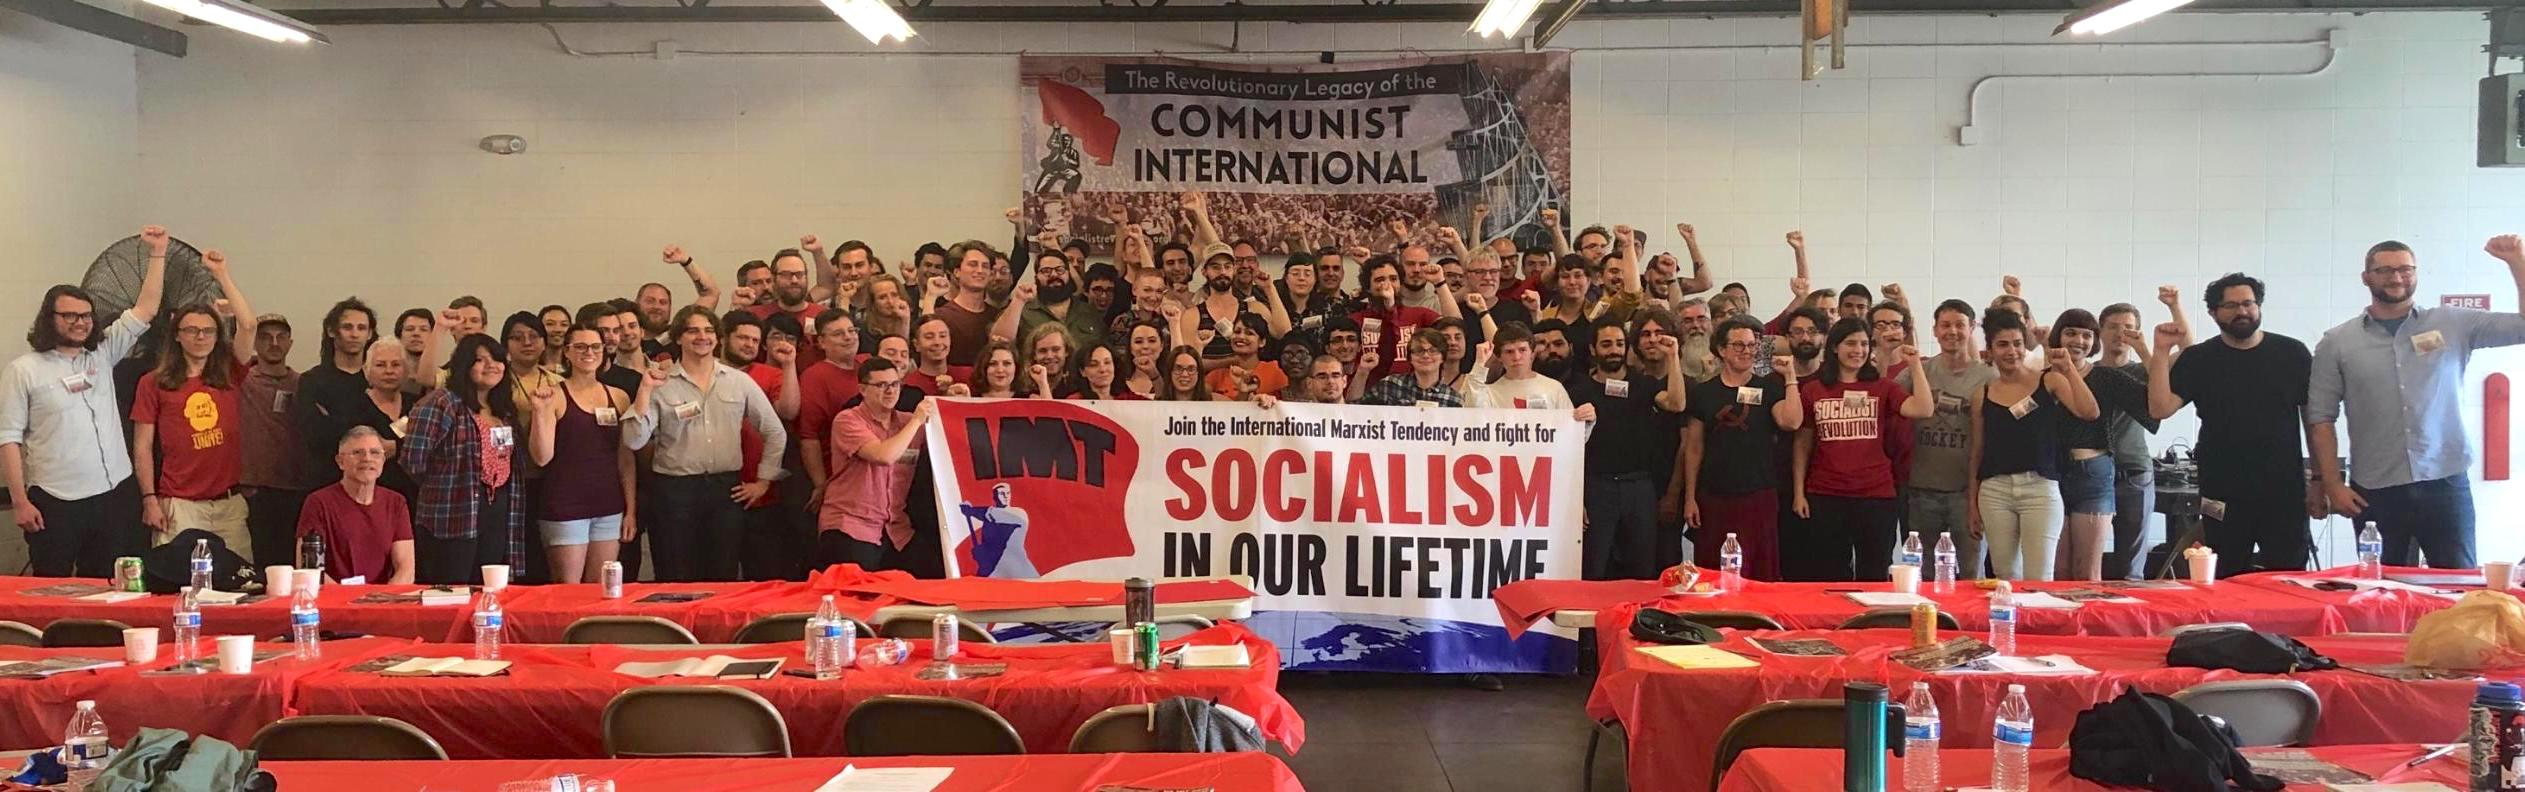 Socialist Revolution 2019 National School Group